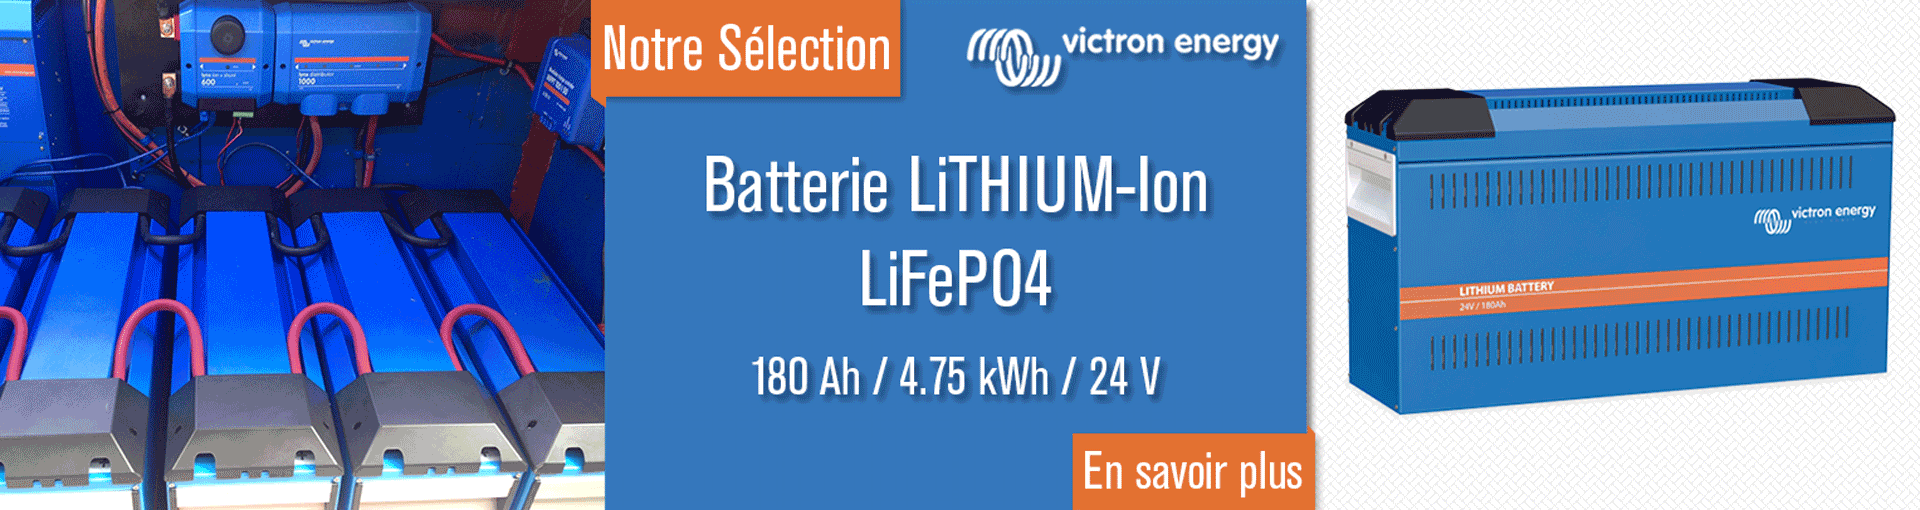 Batterie lithium ion LifePo4 Victron Energy